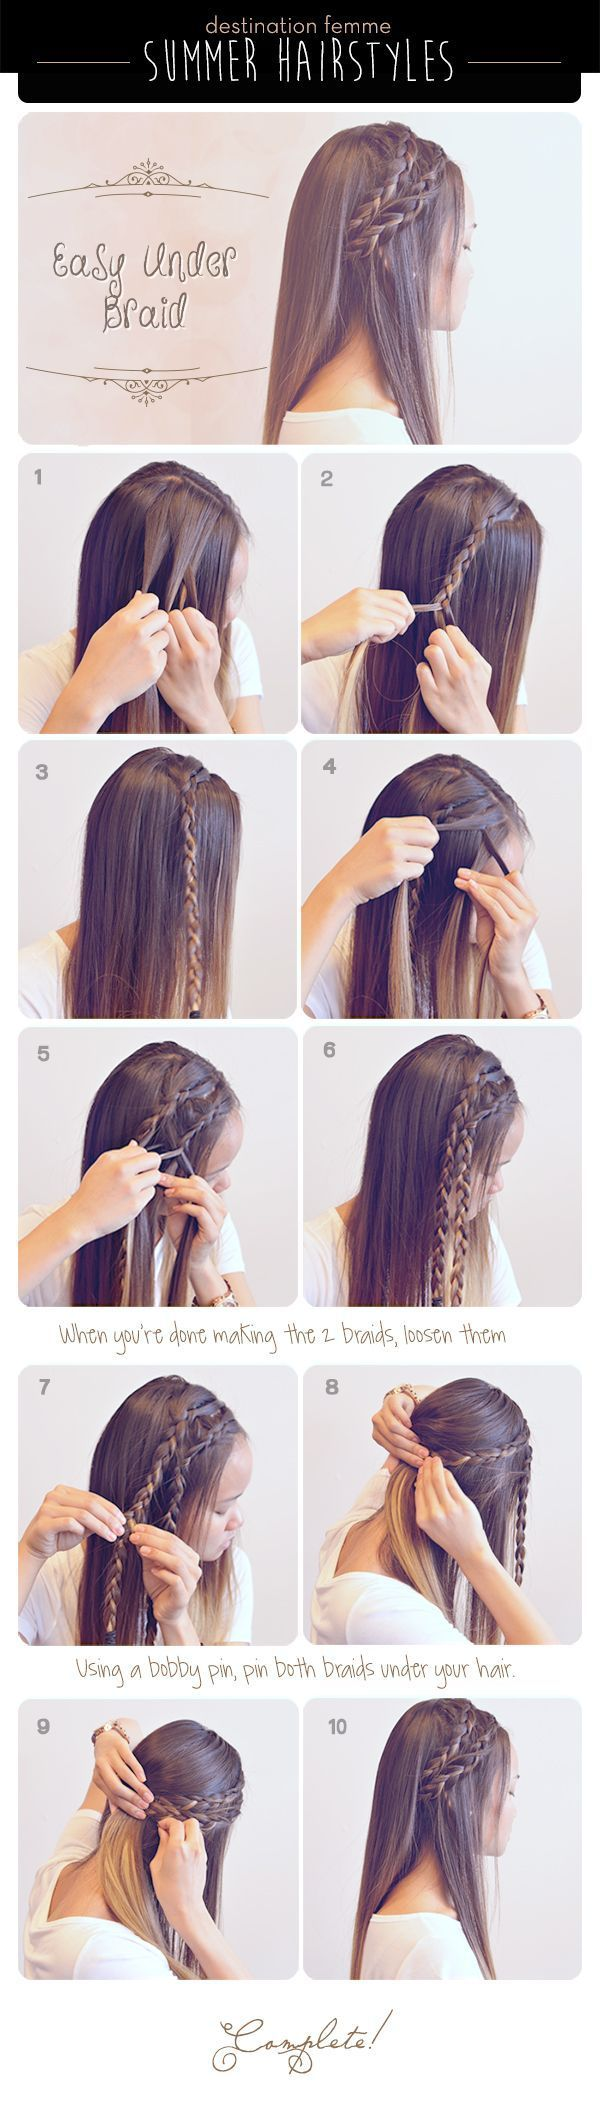 Miraculous 1000 Ideas About Easy Braided Hairstyles On Pinterest Types Of Hairstyles For Women Draintrainus